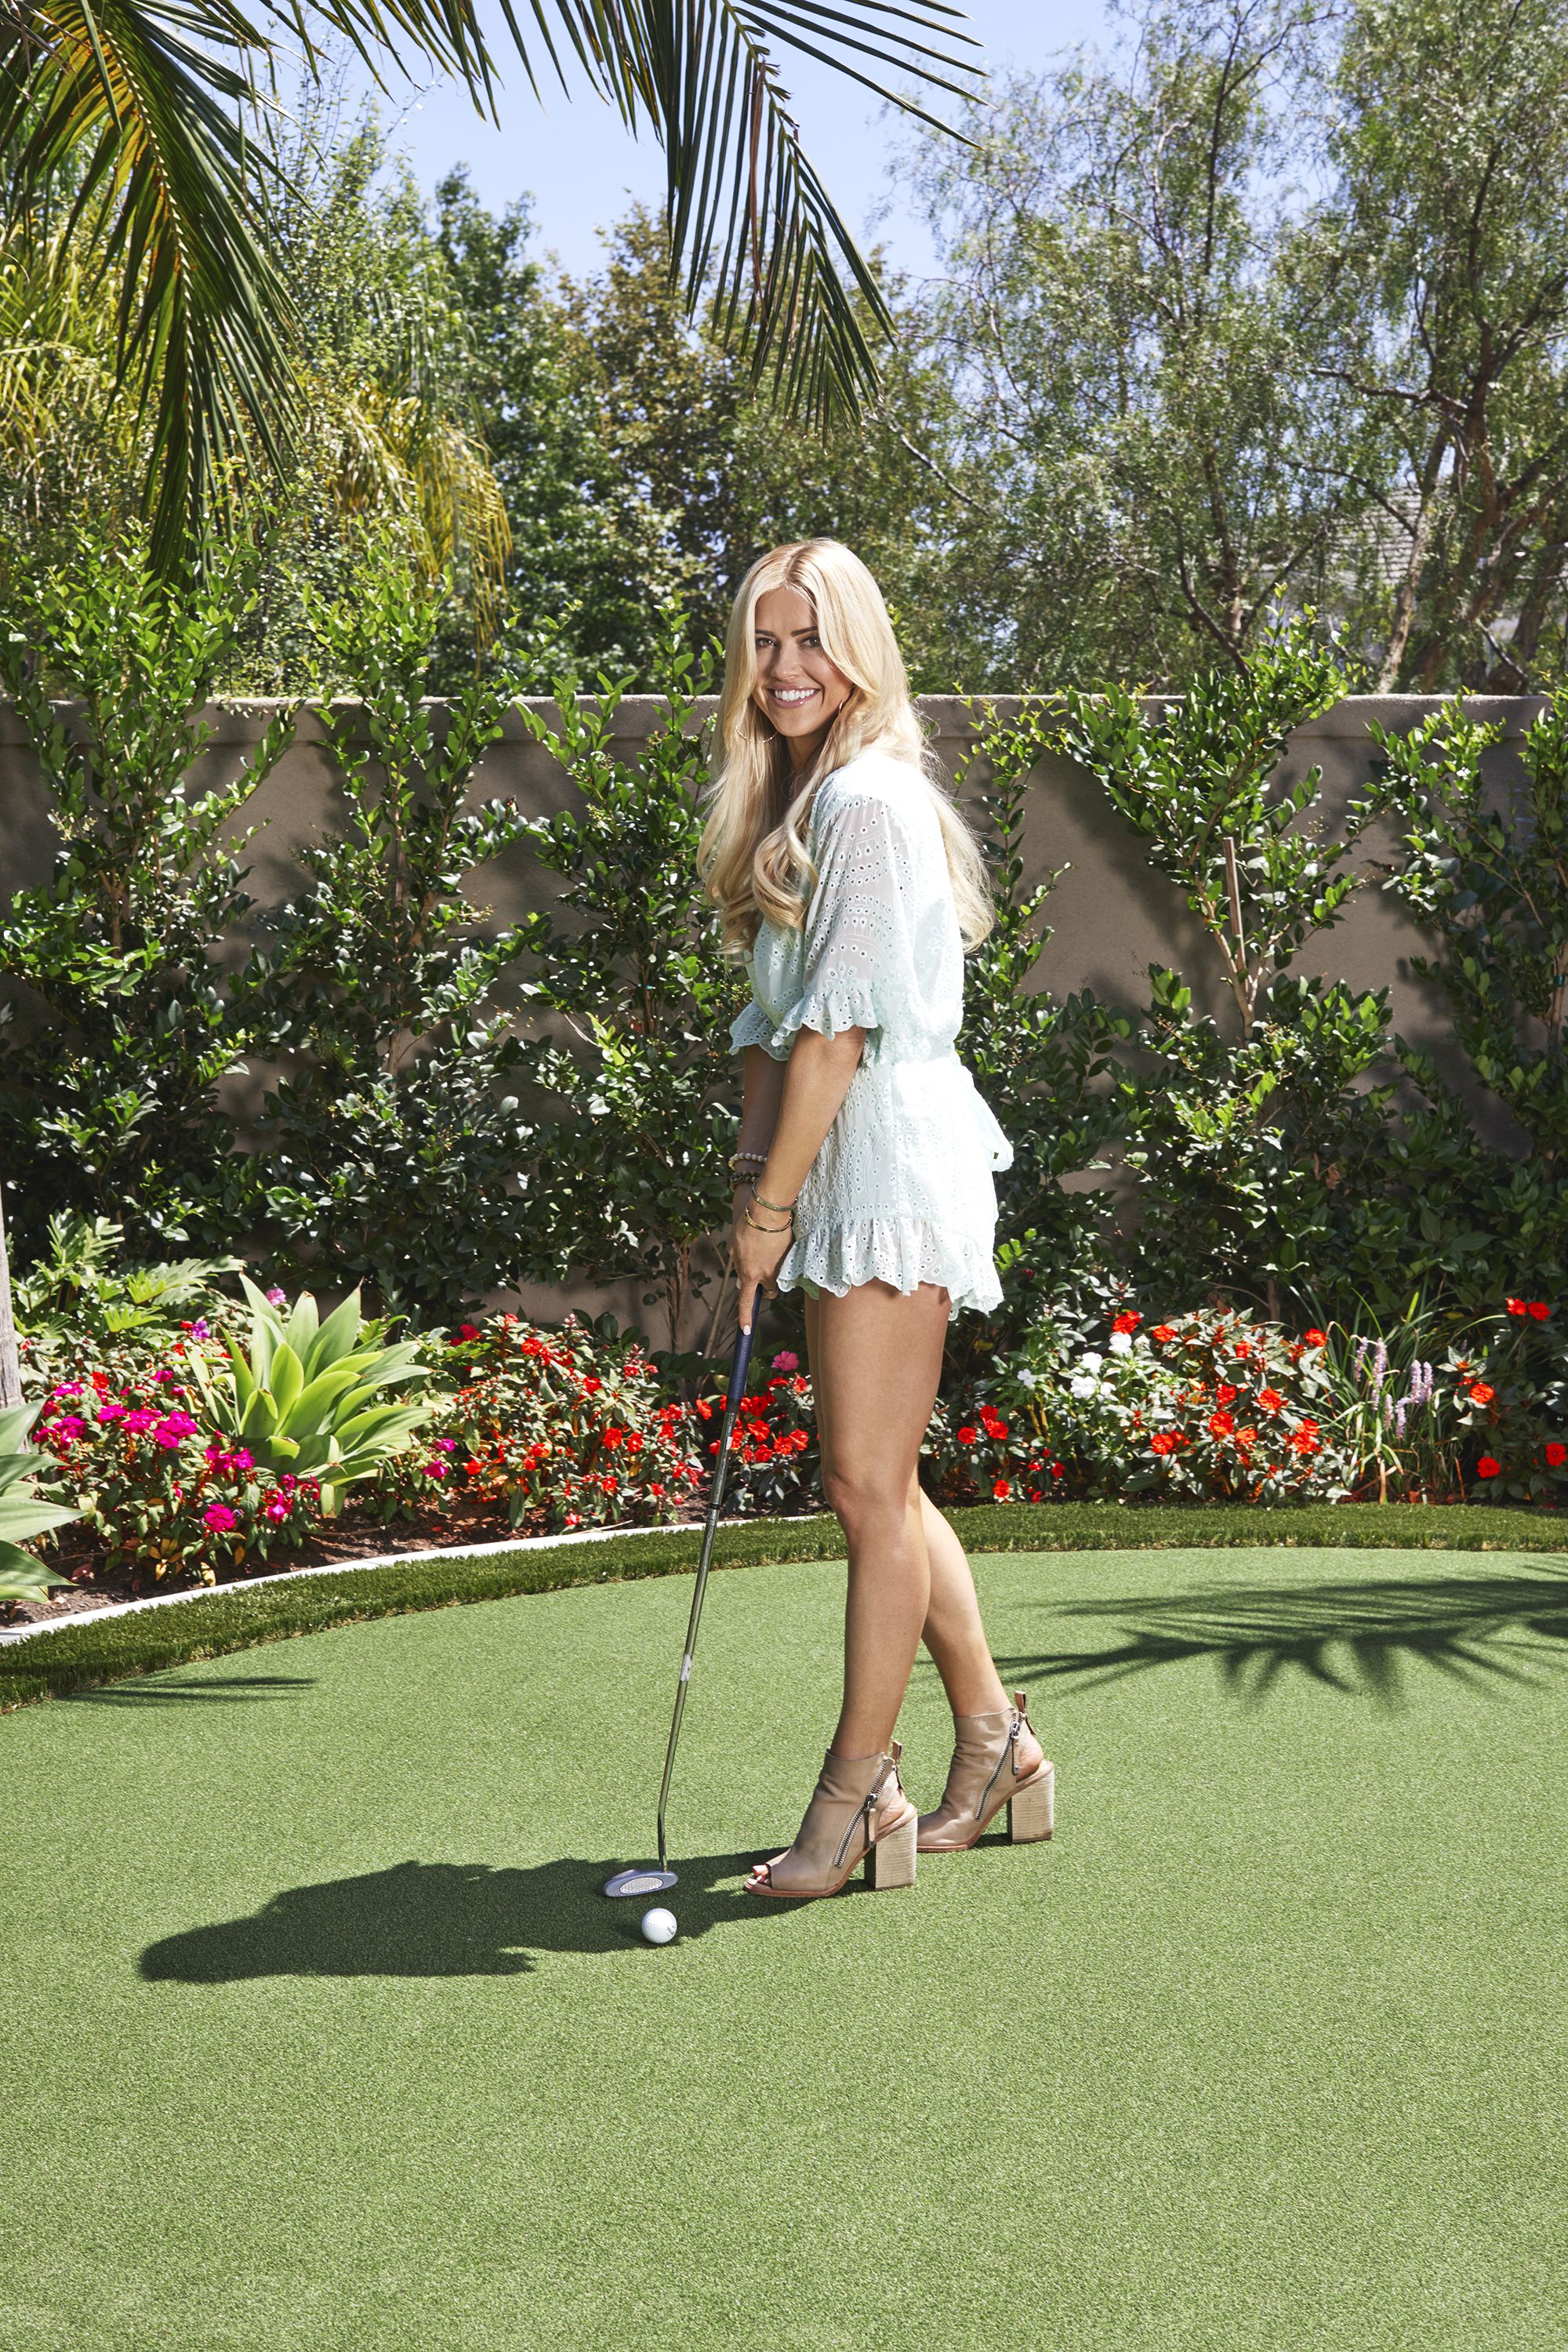 Christina in her backyard, which features a small putting green, in Yorba  Linda, California.